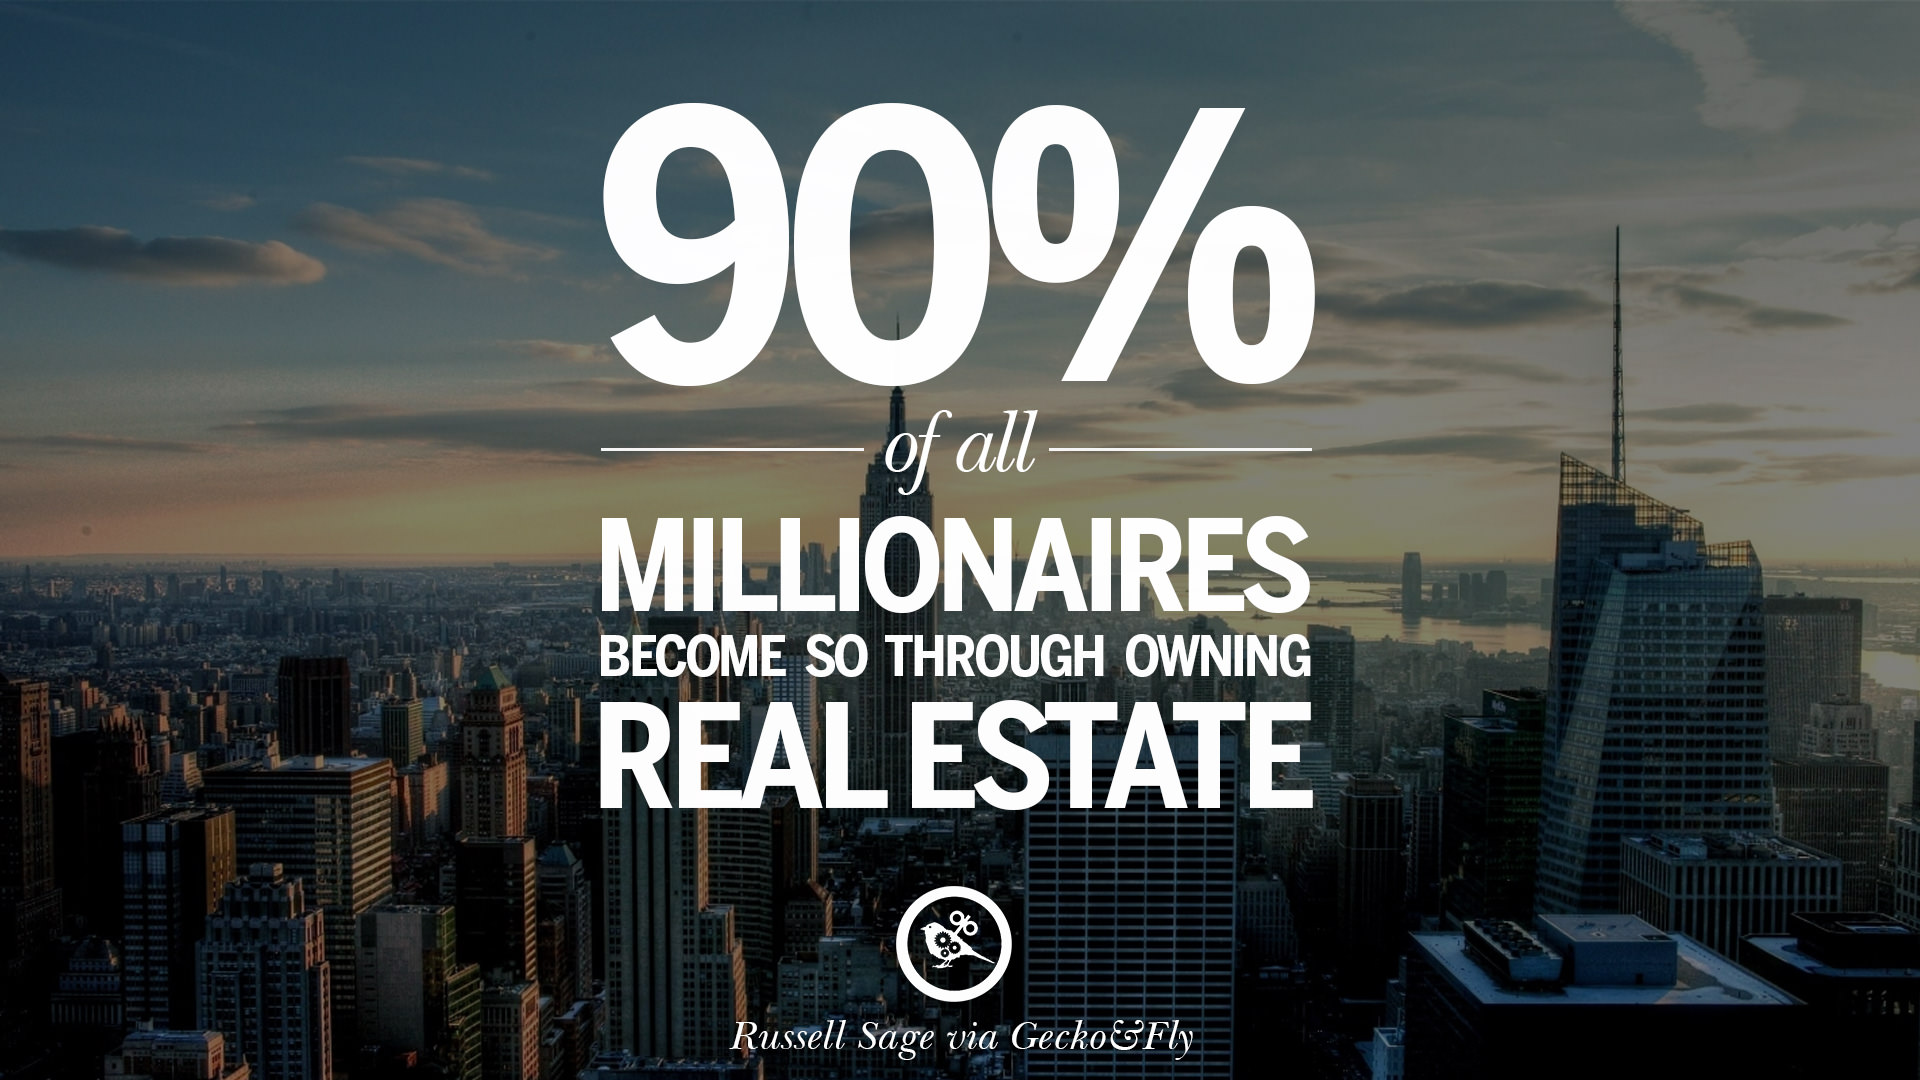 Wolf Of Wall Street Quotes Wallpaper 10 Quotes On Real Estate Investing And Property Investment